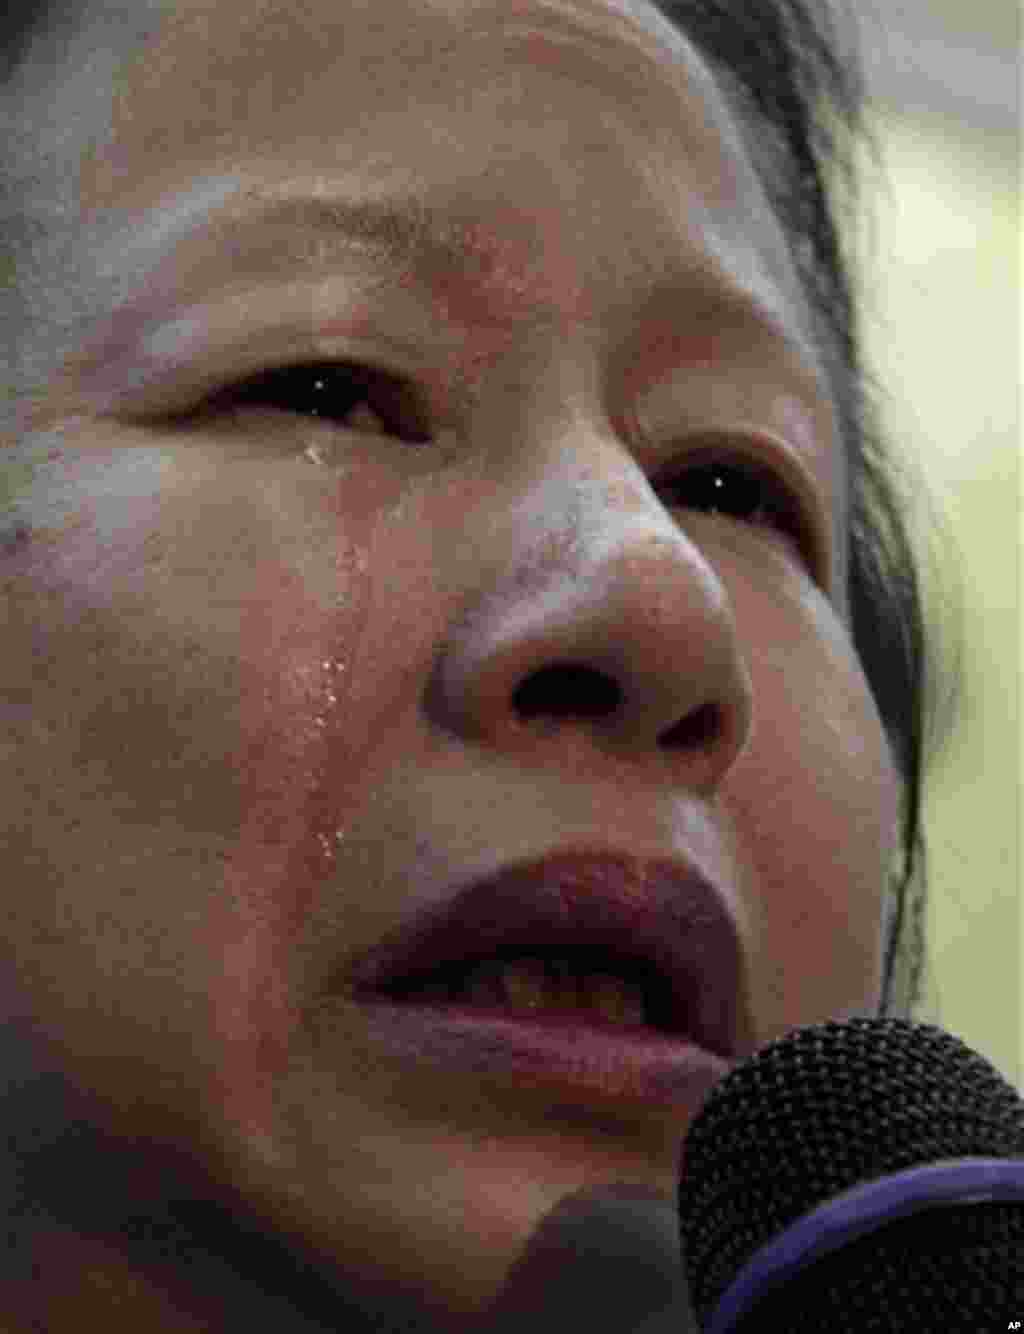 Elizabeth OuYang, president of the New York chapter of the Organization of Chinese Americans, weeps as she speaks about the death of Pvt. Danny Chen during a news conference on Thursday, Jan. 5, 2012 in New York. An update was provided on a Pentagon inve